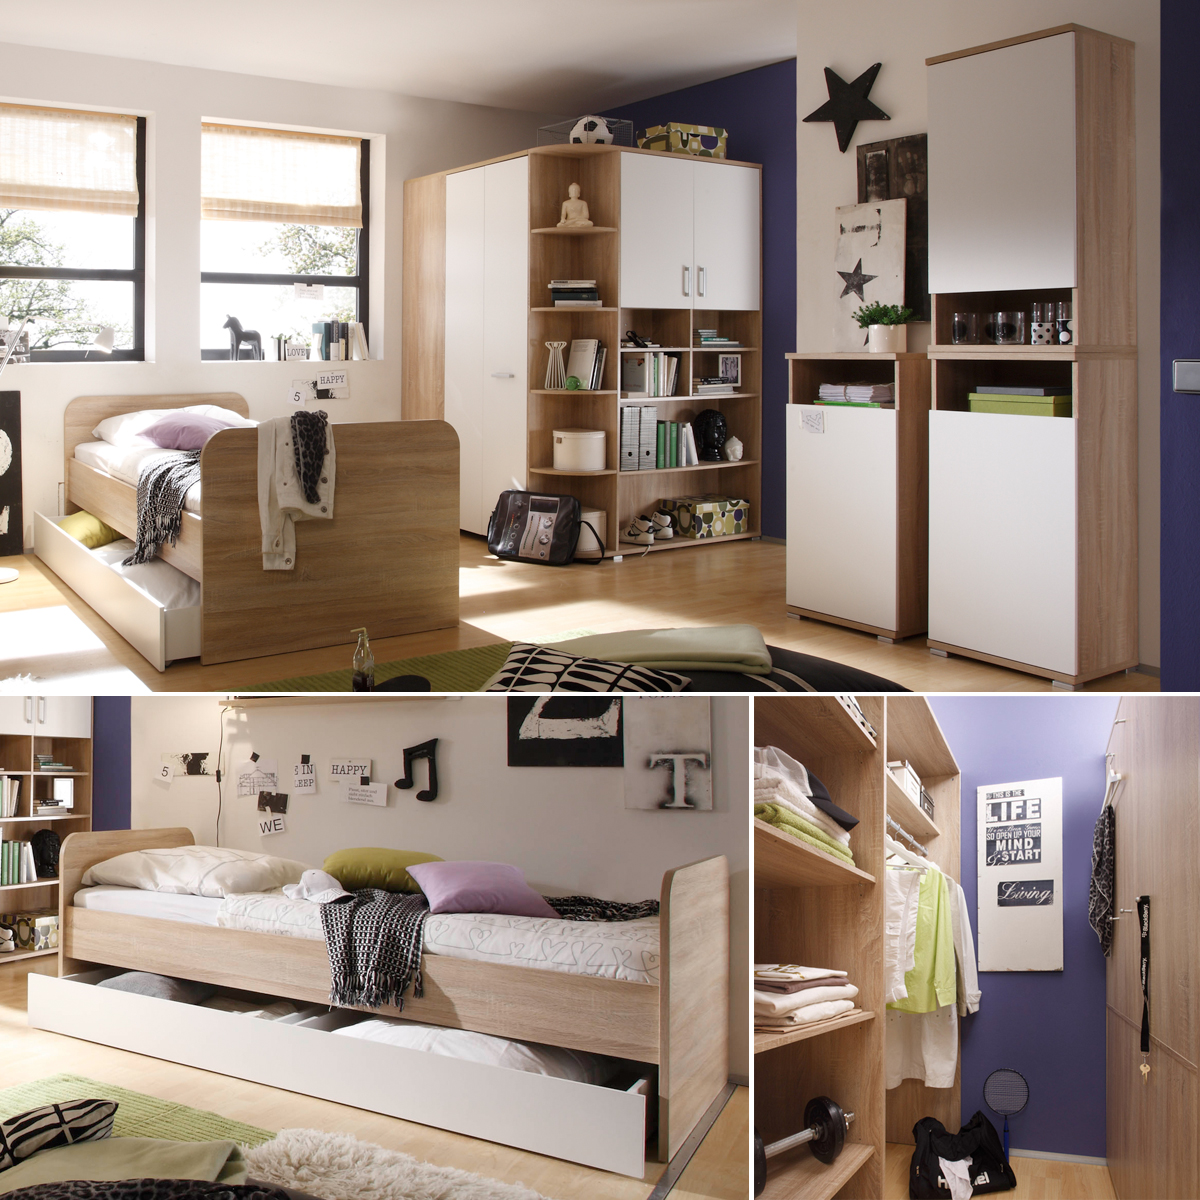 jugendzimmer 5 teilig corner eckschrank jugendbett 3. Black Bedroom Furniture Sets. Home Design Ideas